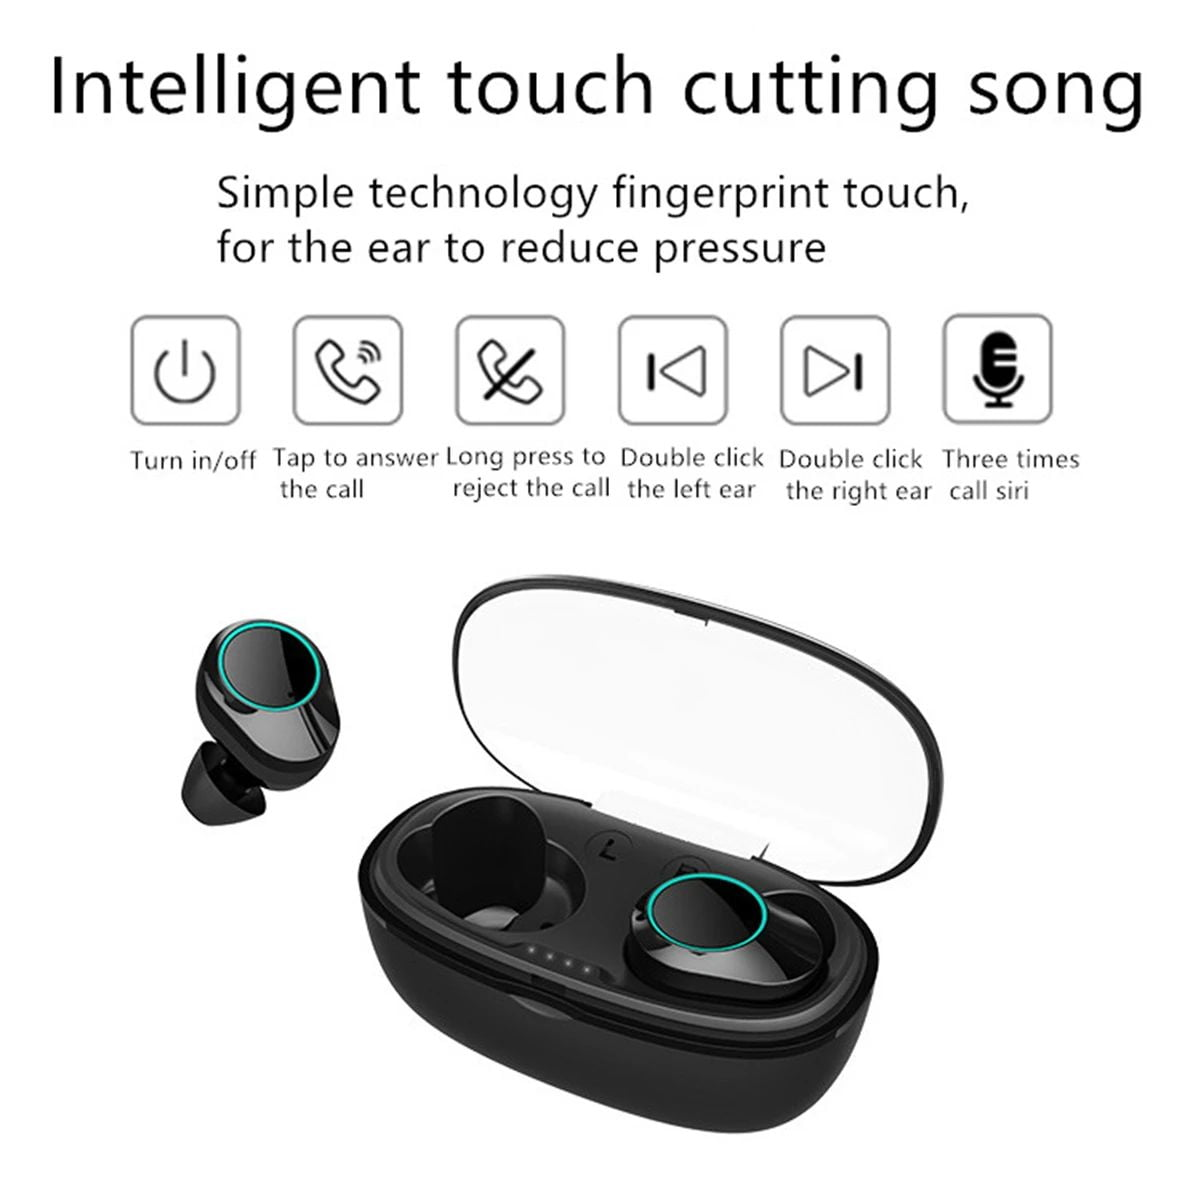 T2C TWS Bluetooth 5.0 earphone hifi stereo type-c charging case wholesale china 1 (14)